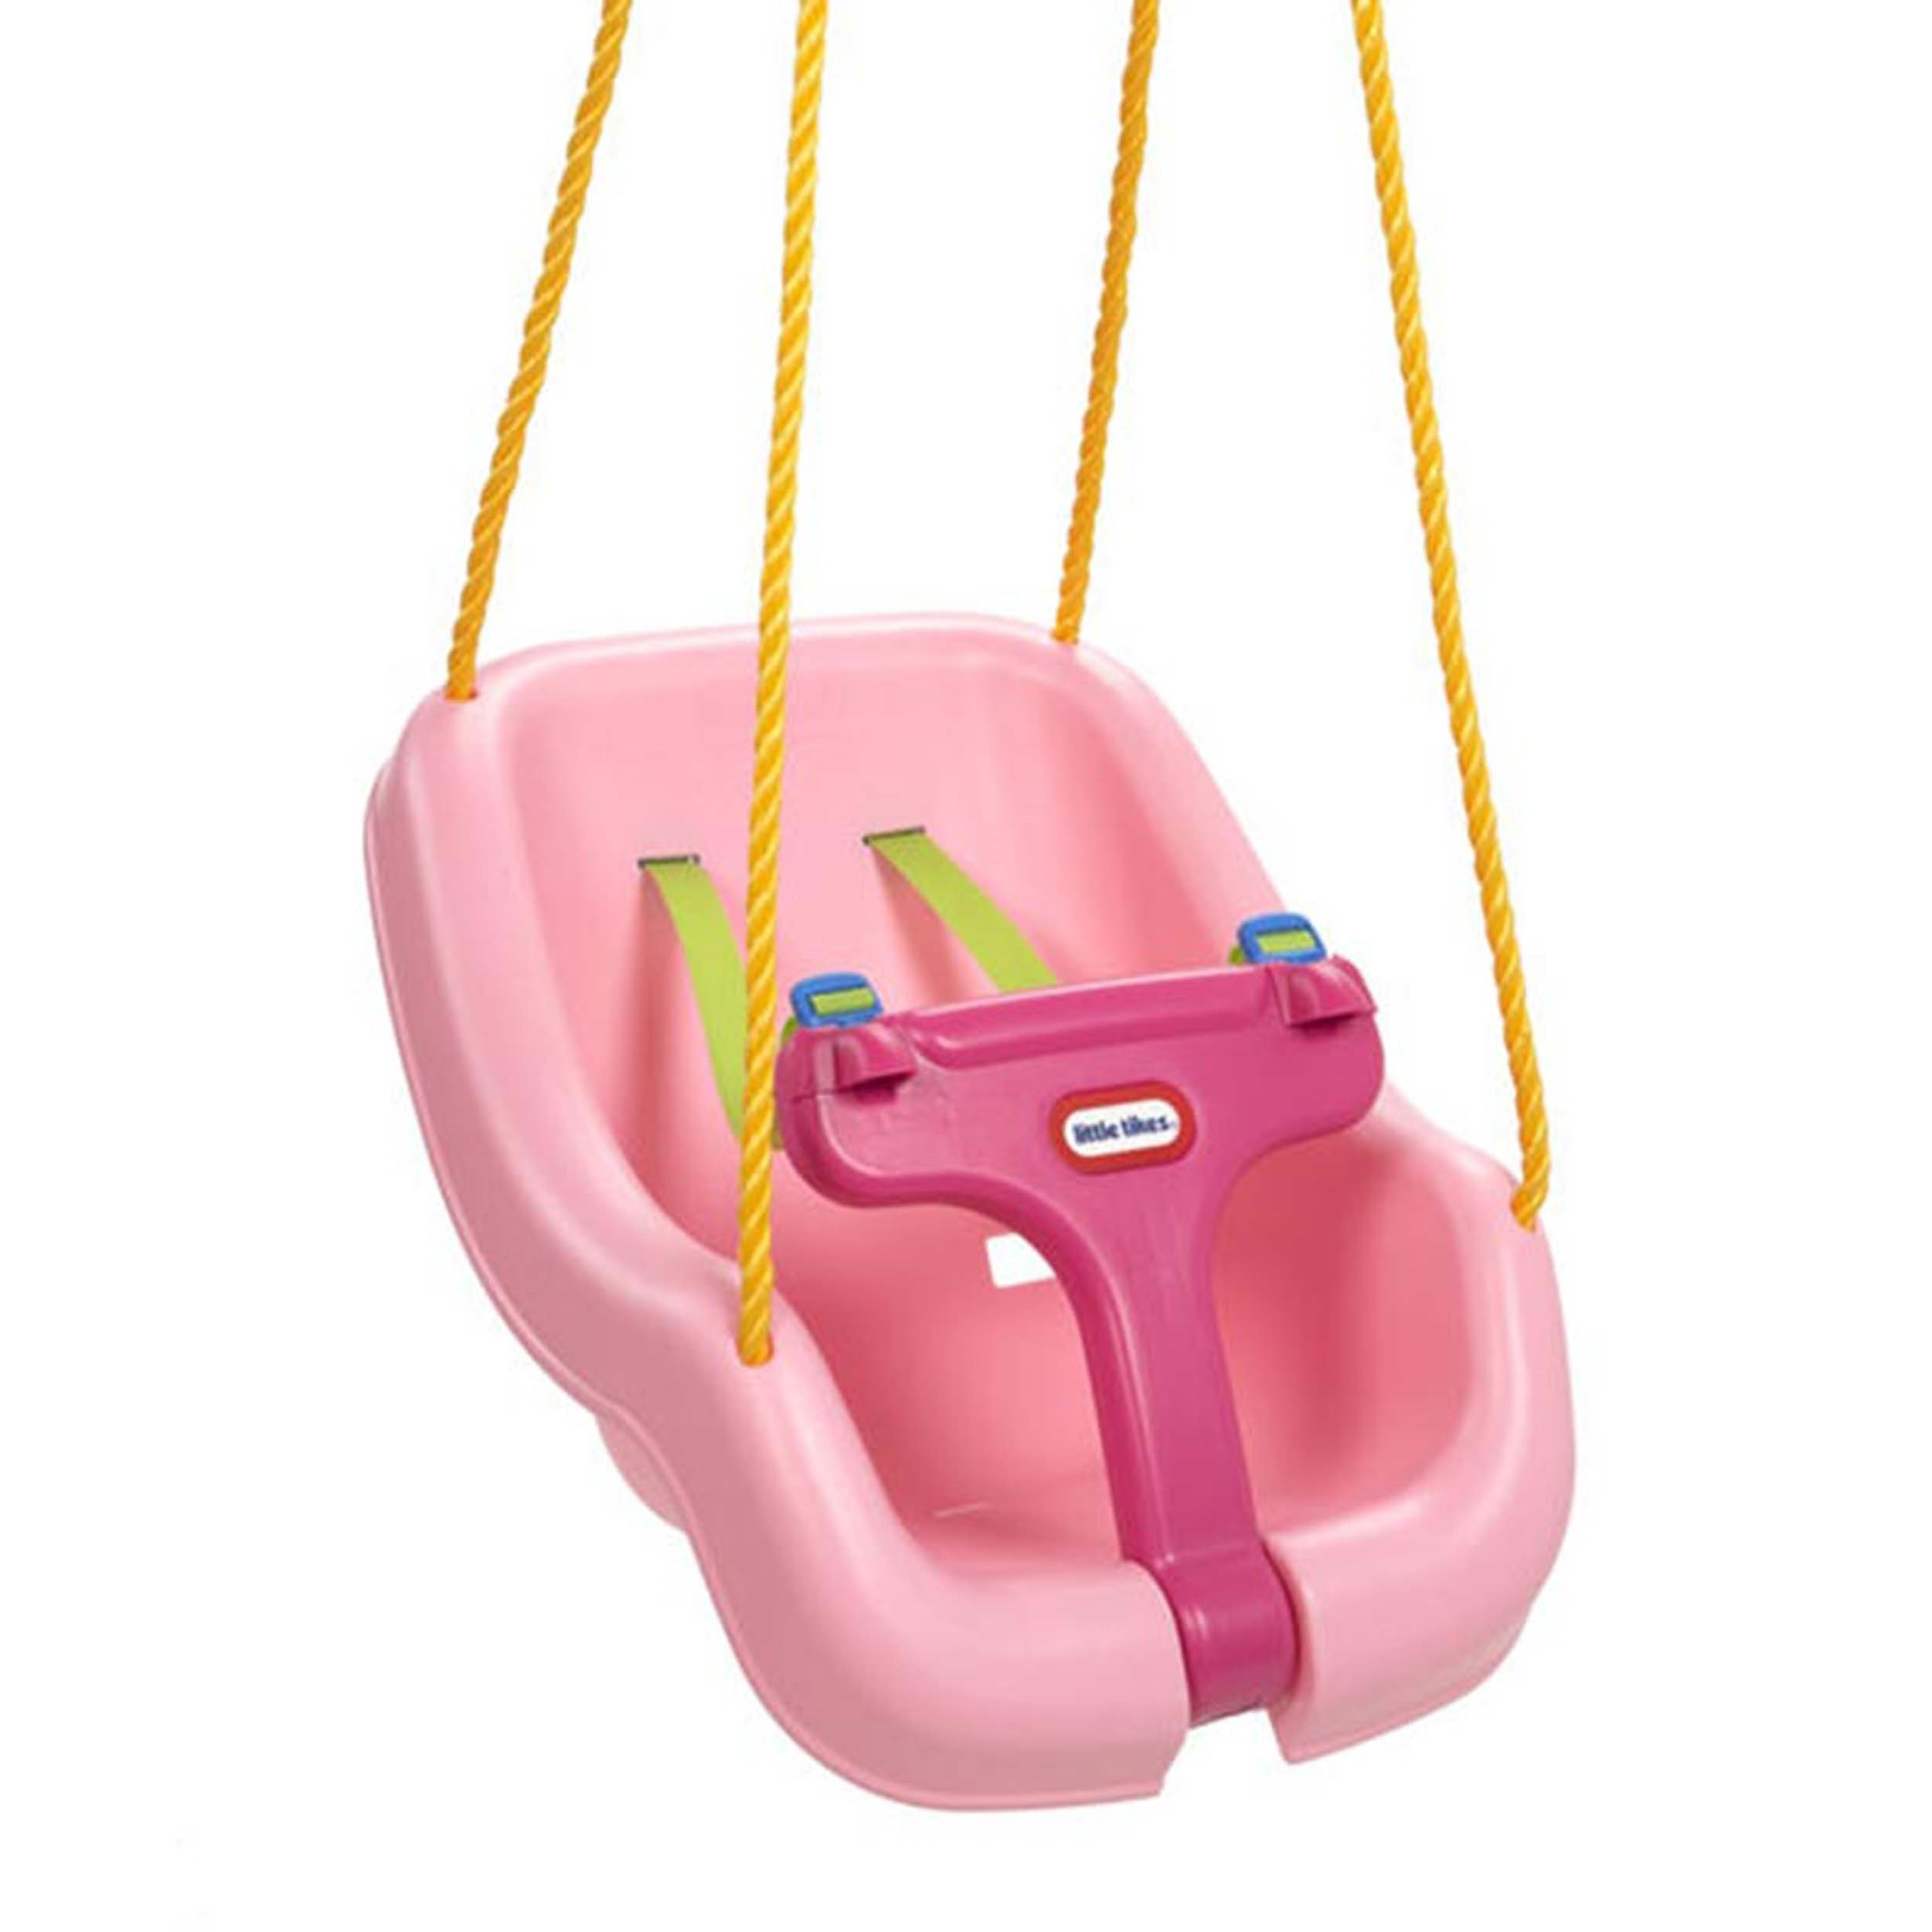 Little Tikes 2-in-1 Snug 'n Secure Swing - Pink (Brown Box)